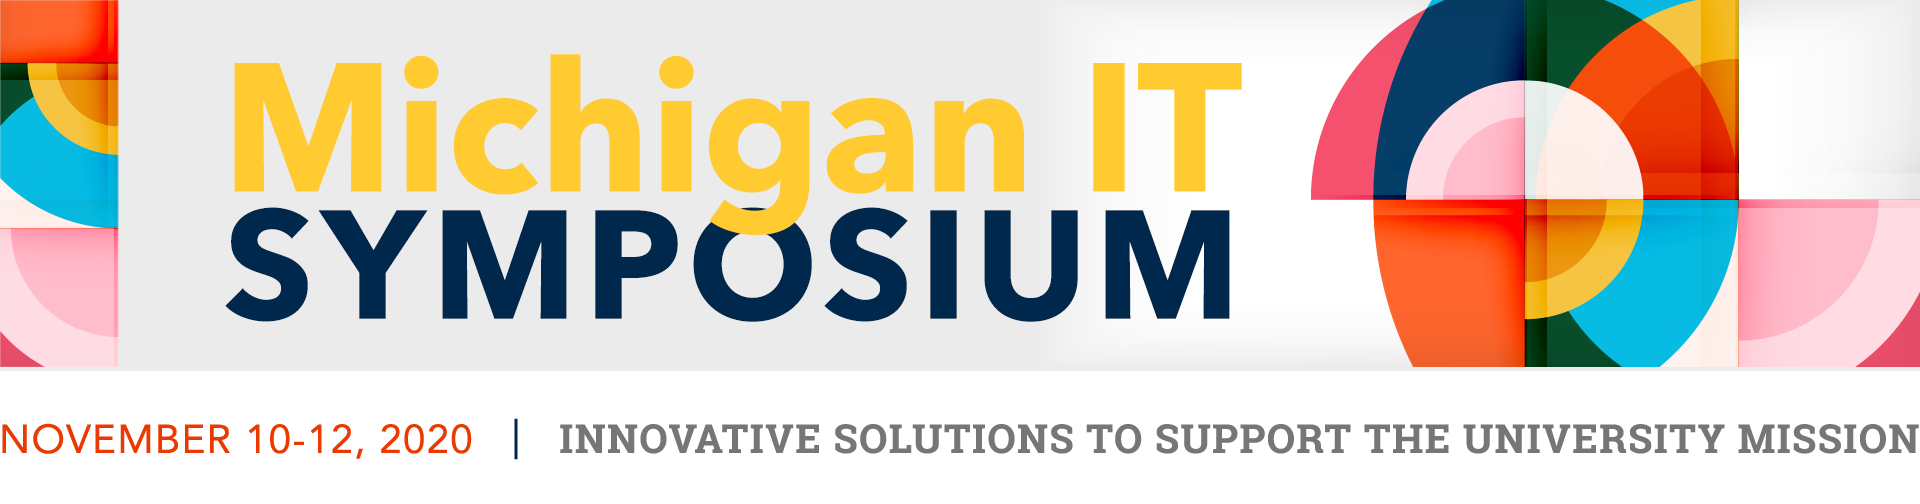 2020 Michigan IT Symposium - November 10-12, 2020 - Innovative Solutions to Support the University Mission